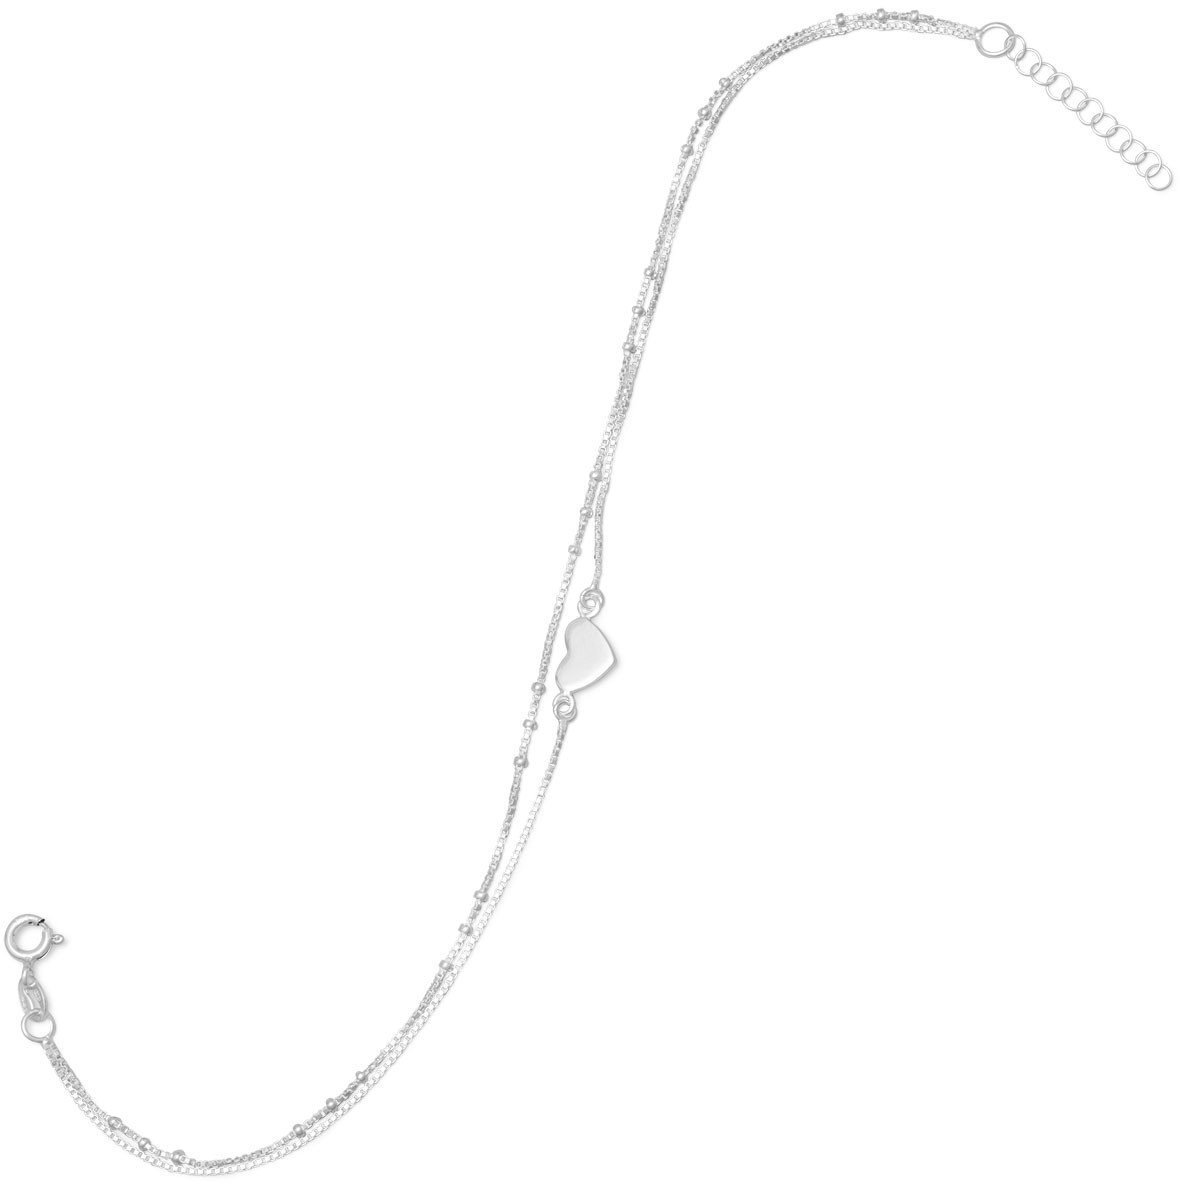 11 + 1 Double Strand Heart Anklet 925 Sterling Silver